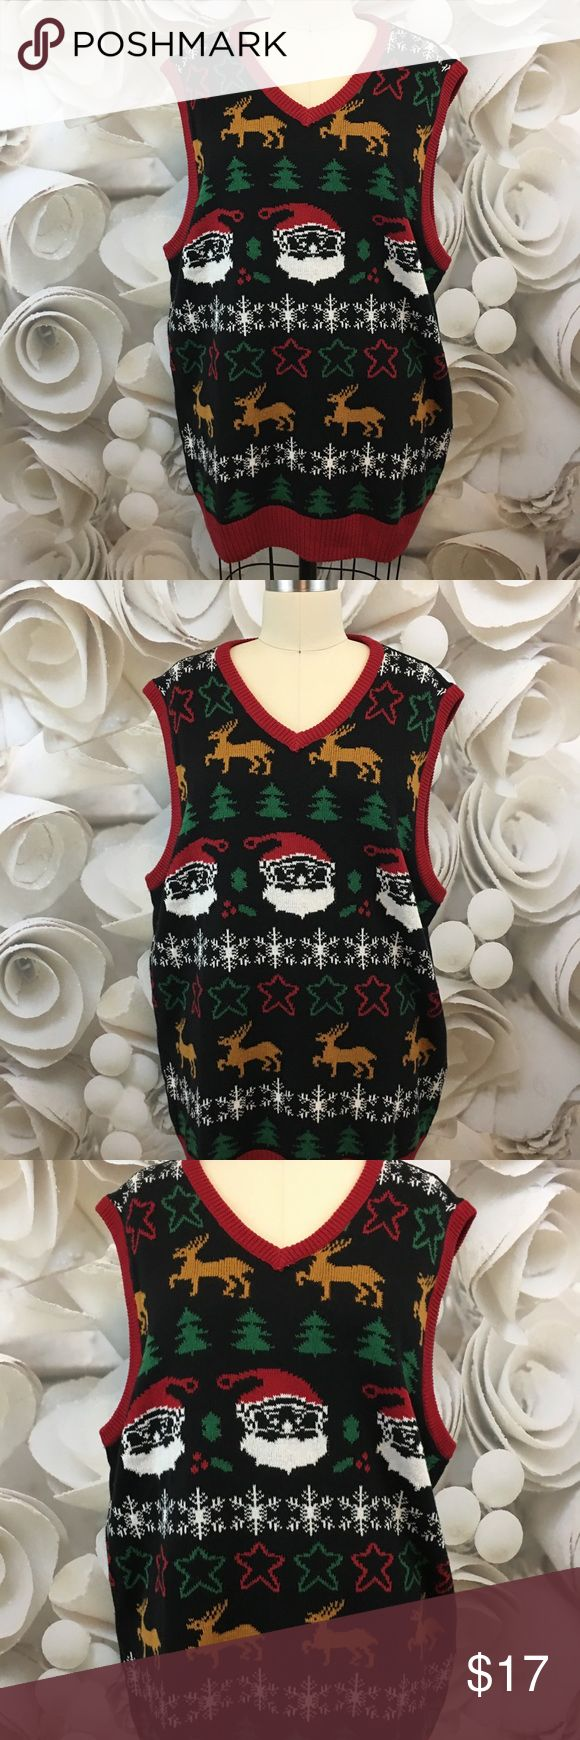 Ugly Christmas Sweater Vest Holiday VNeck Sz XL Ugly Christmas Sweater Mens Sweater Vest Holiday Themed VNeck Multicolor Sz XL - EUC     Measurements:  Chest:  50 inches around Shoulder to hem:  30 inches long Sleeveless / Vest Exact Fabric Blend: 60% Cotton, 40% Acrylic Ugly Christmas Sweater Sweaters V-Neck